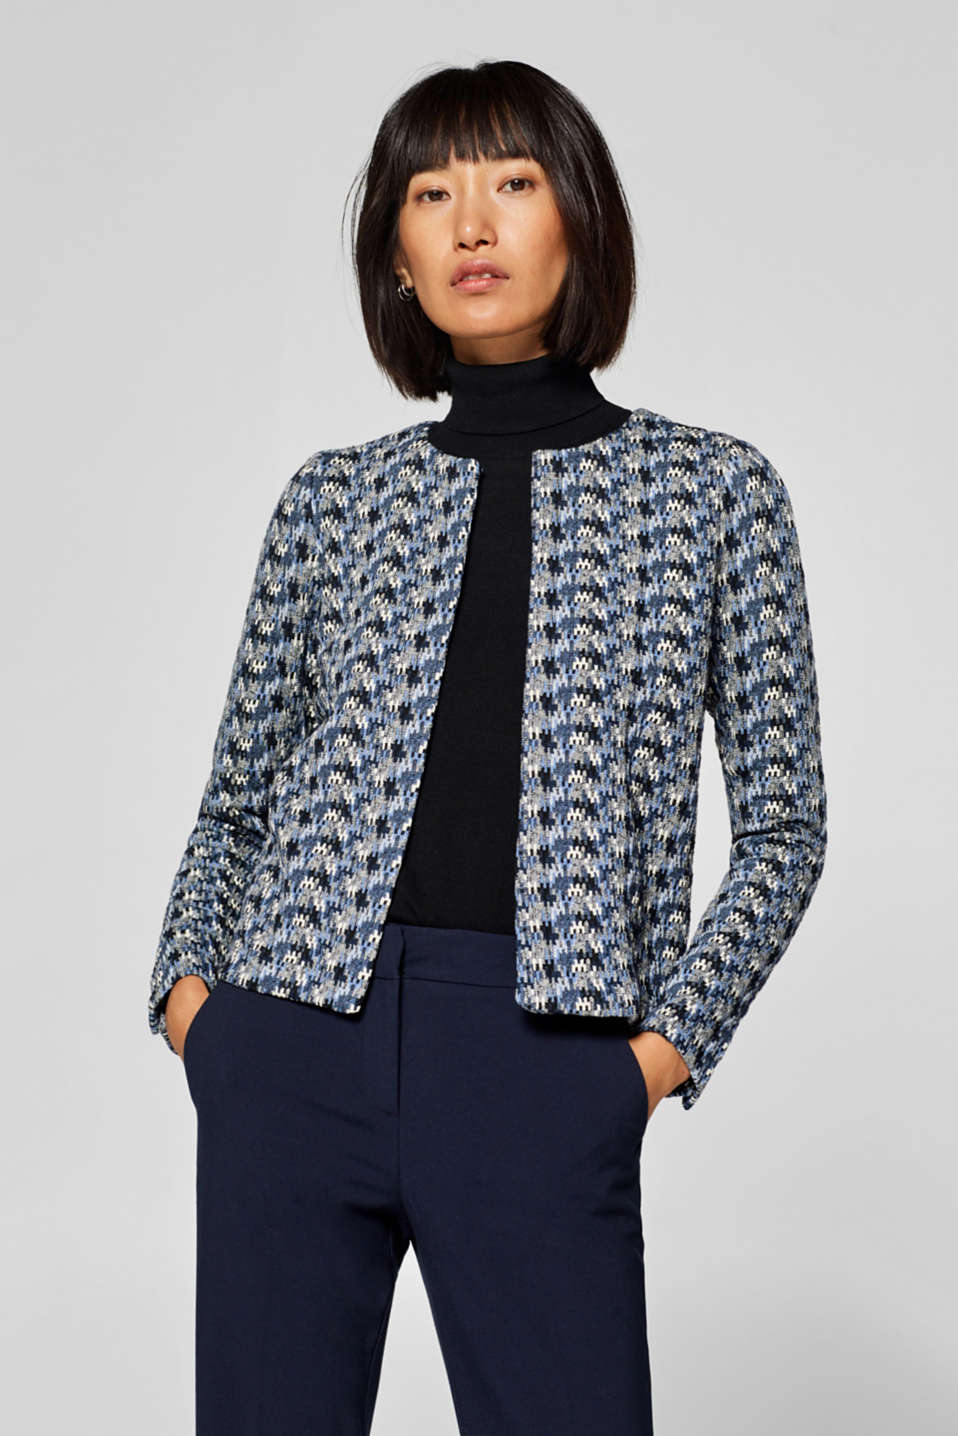 Esprit - Stretch jersey cardigan with a jacquard pattern